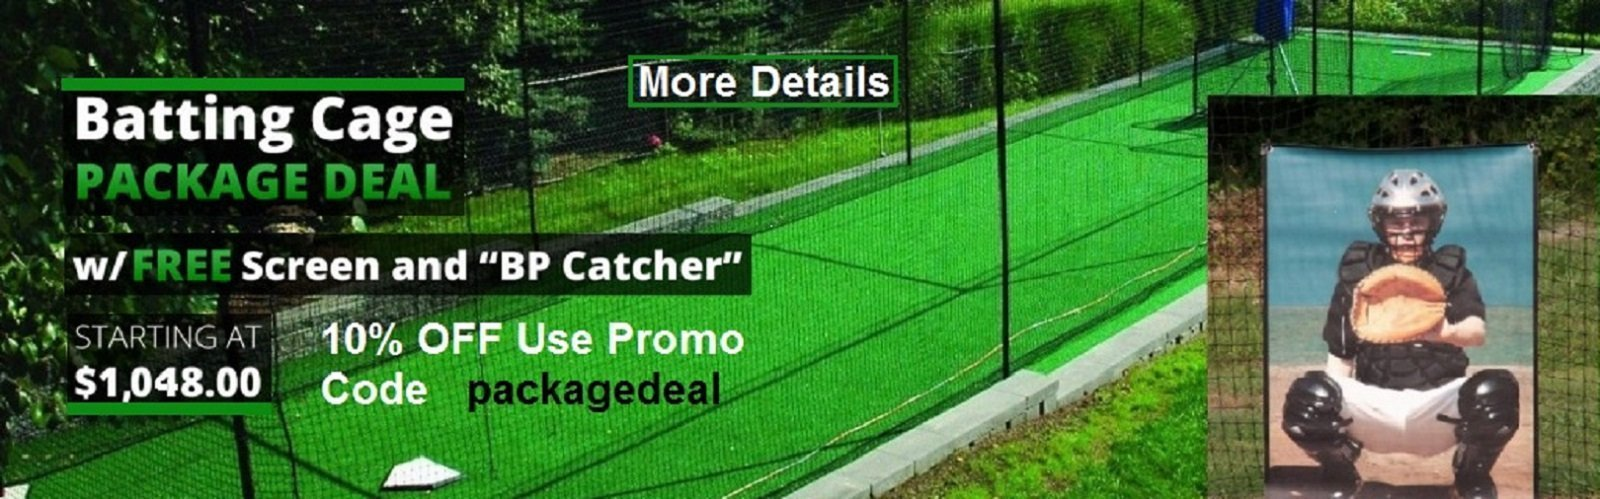 commercial-package-deal-banner-10off